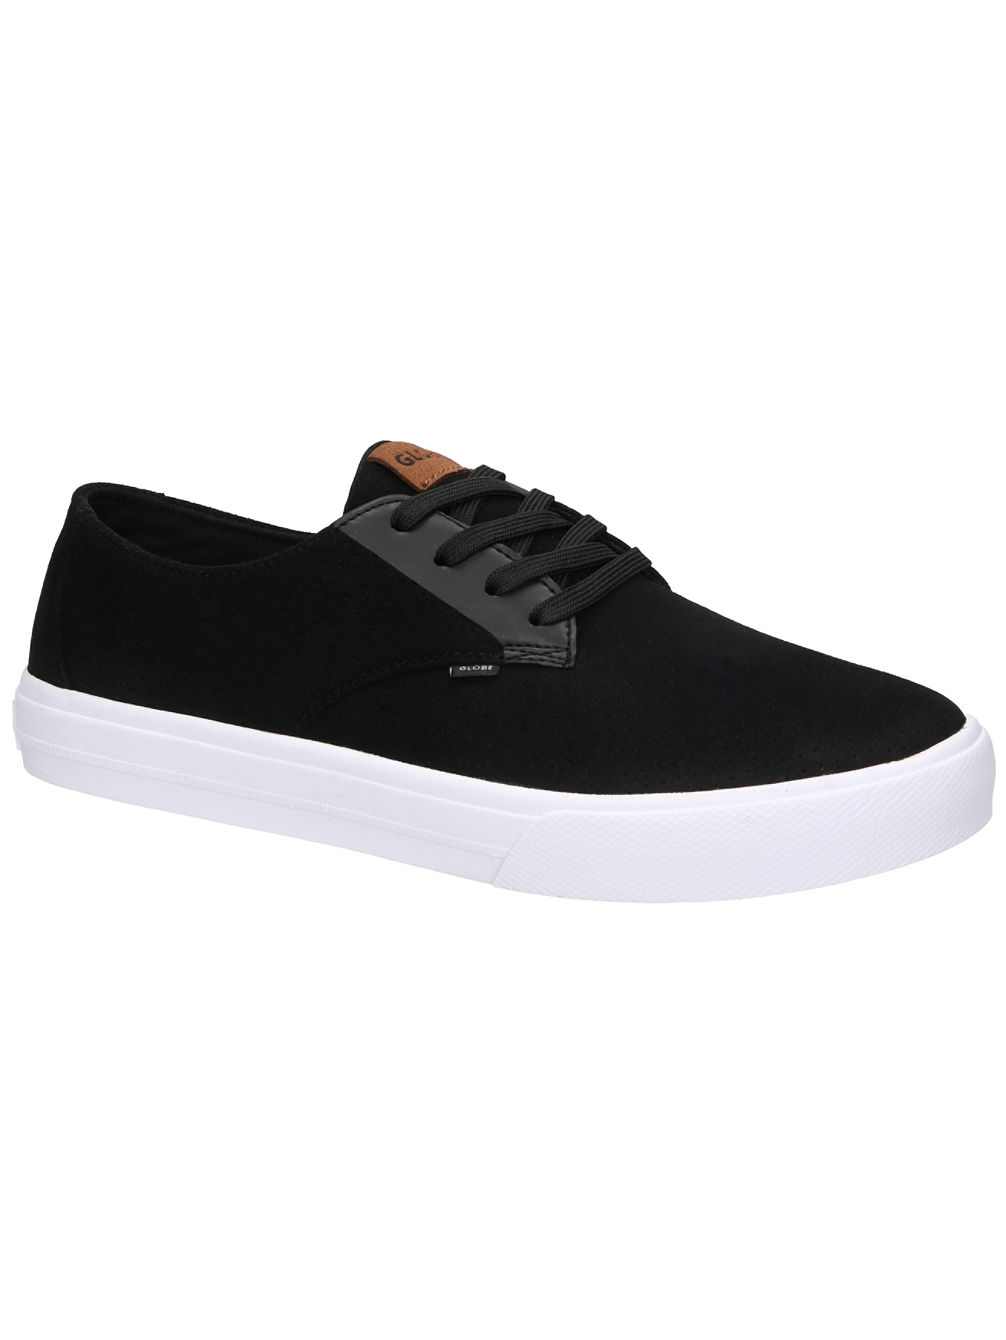 Motley LYT Skate Shoes